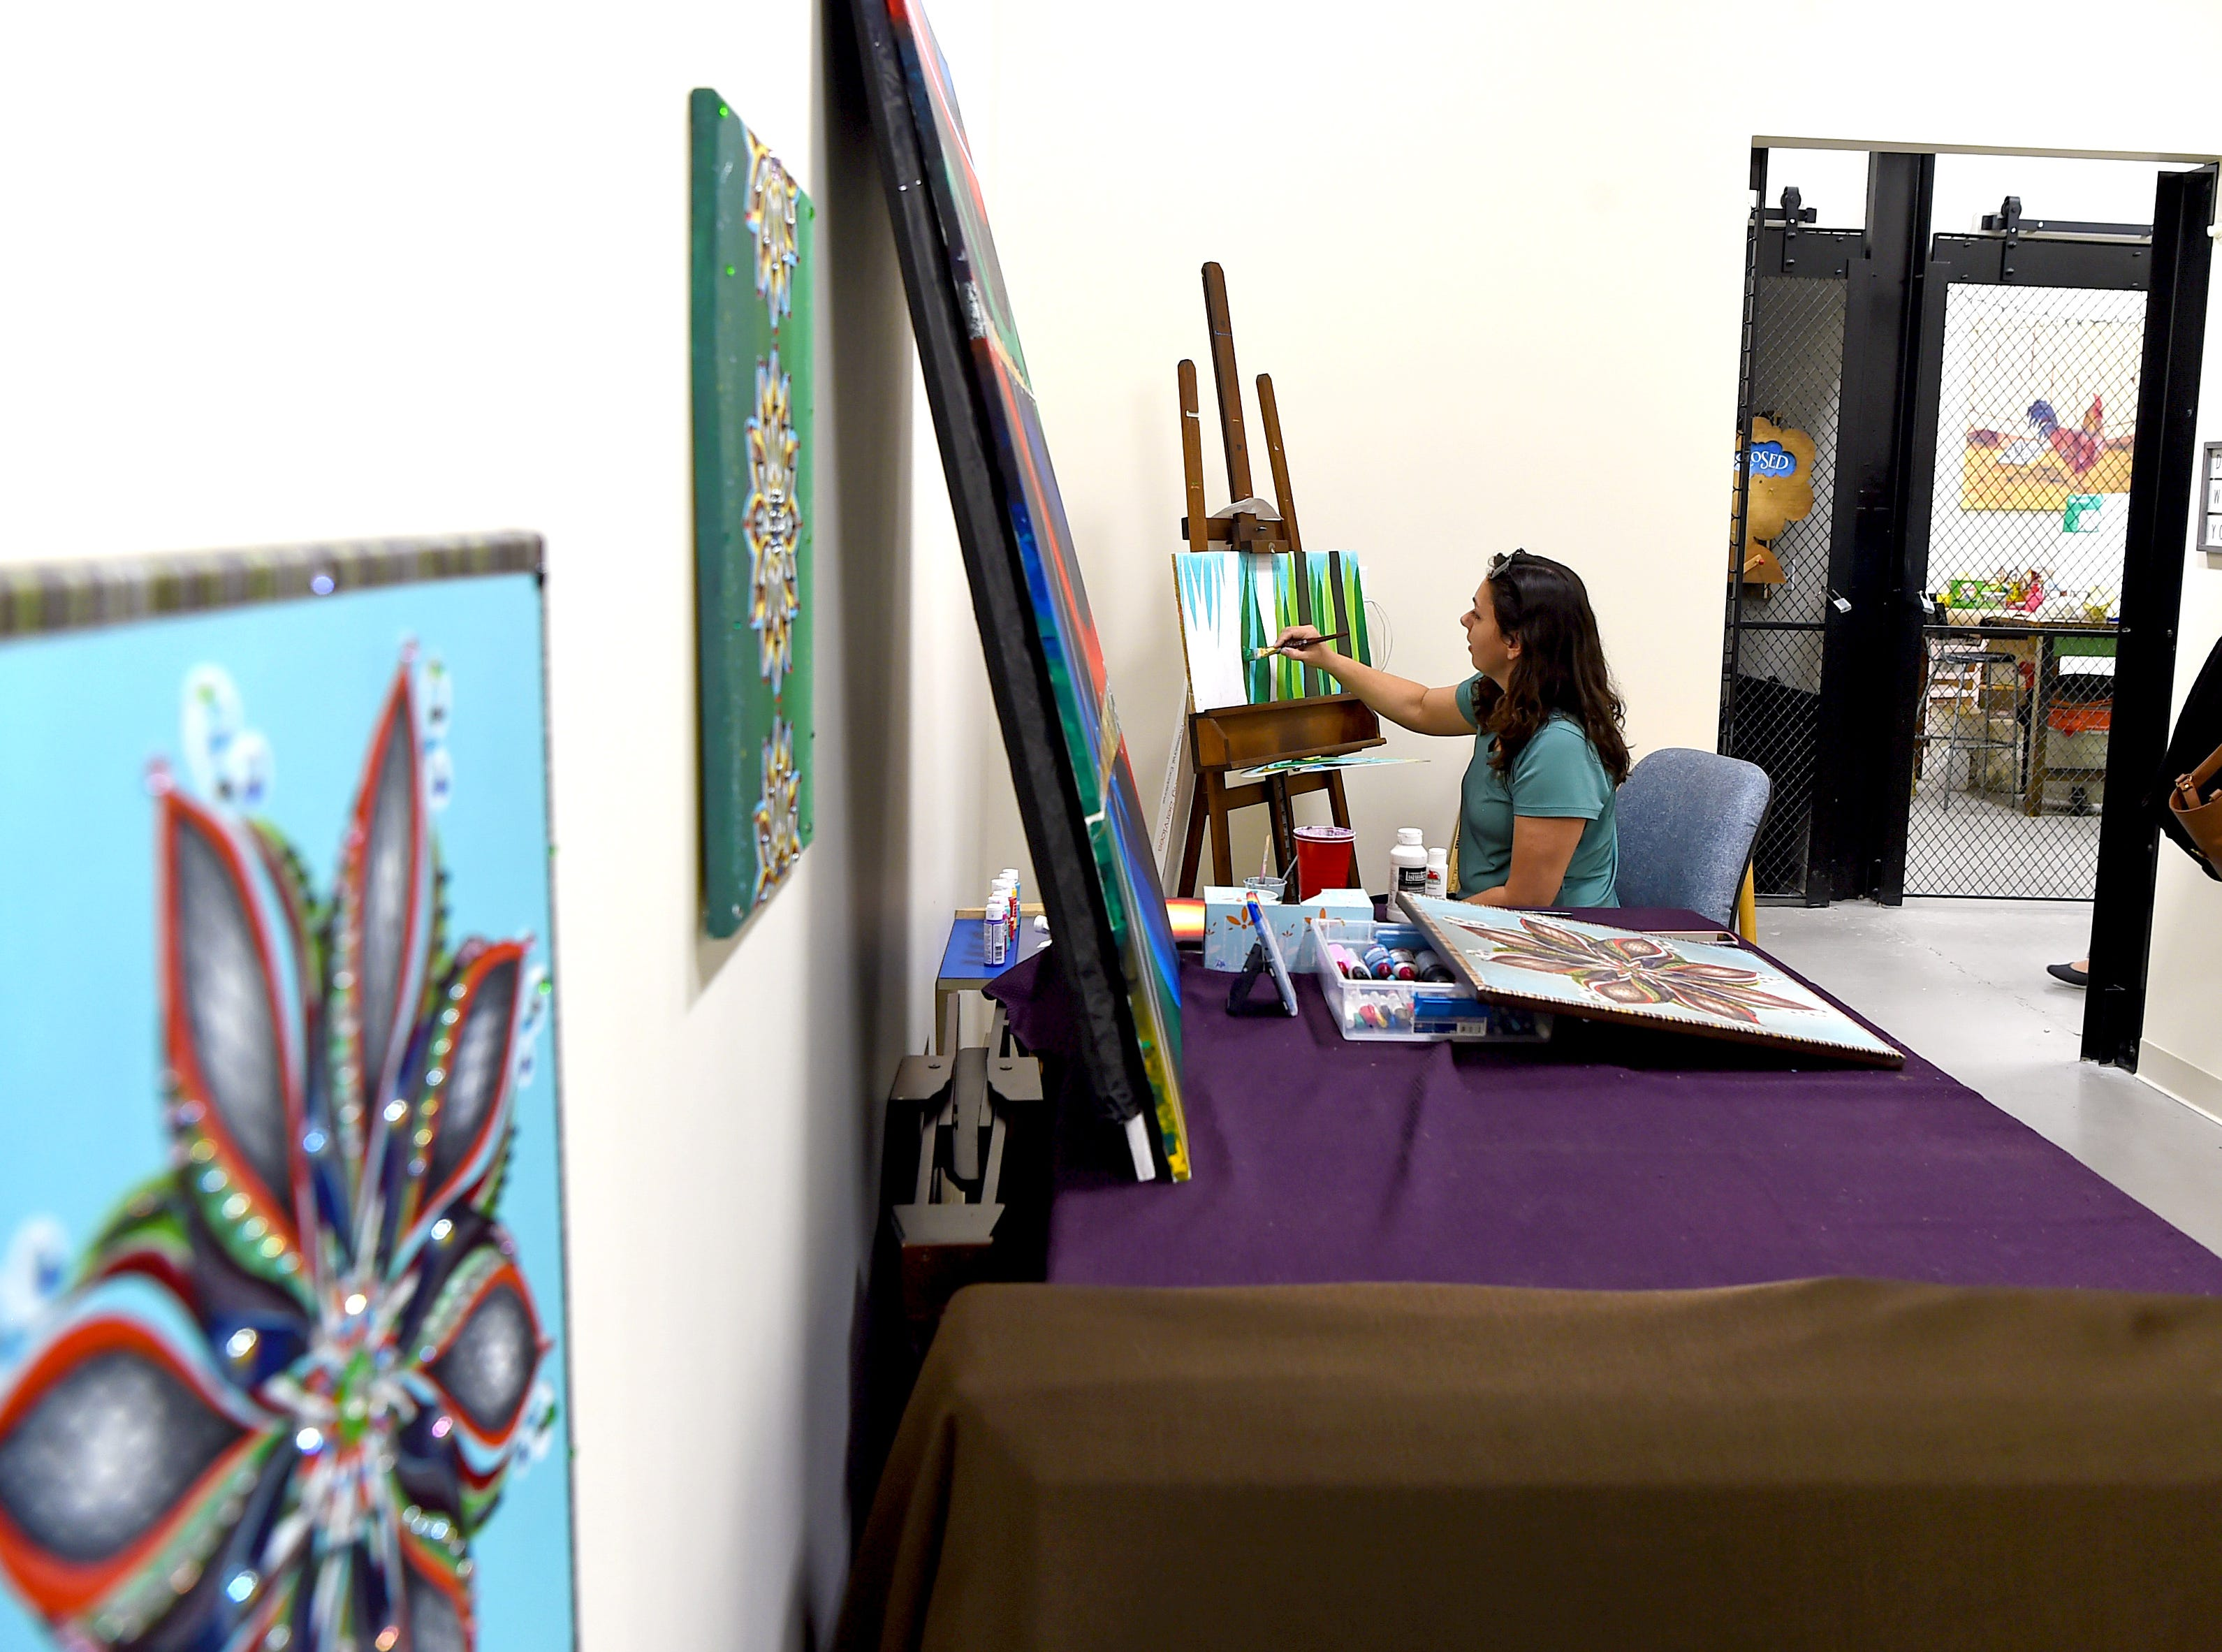 Jennifer Whitaker at work on a painting in Artist Alley studio. Once an industrial space, Artist's Alley at South Hill now houses a variety of art studios, with more being built to meet the demands of area artists.